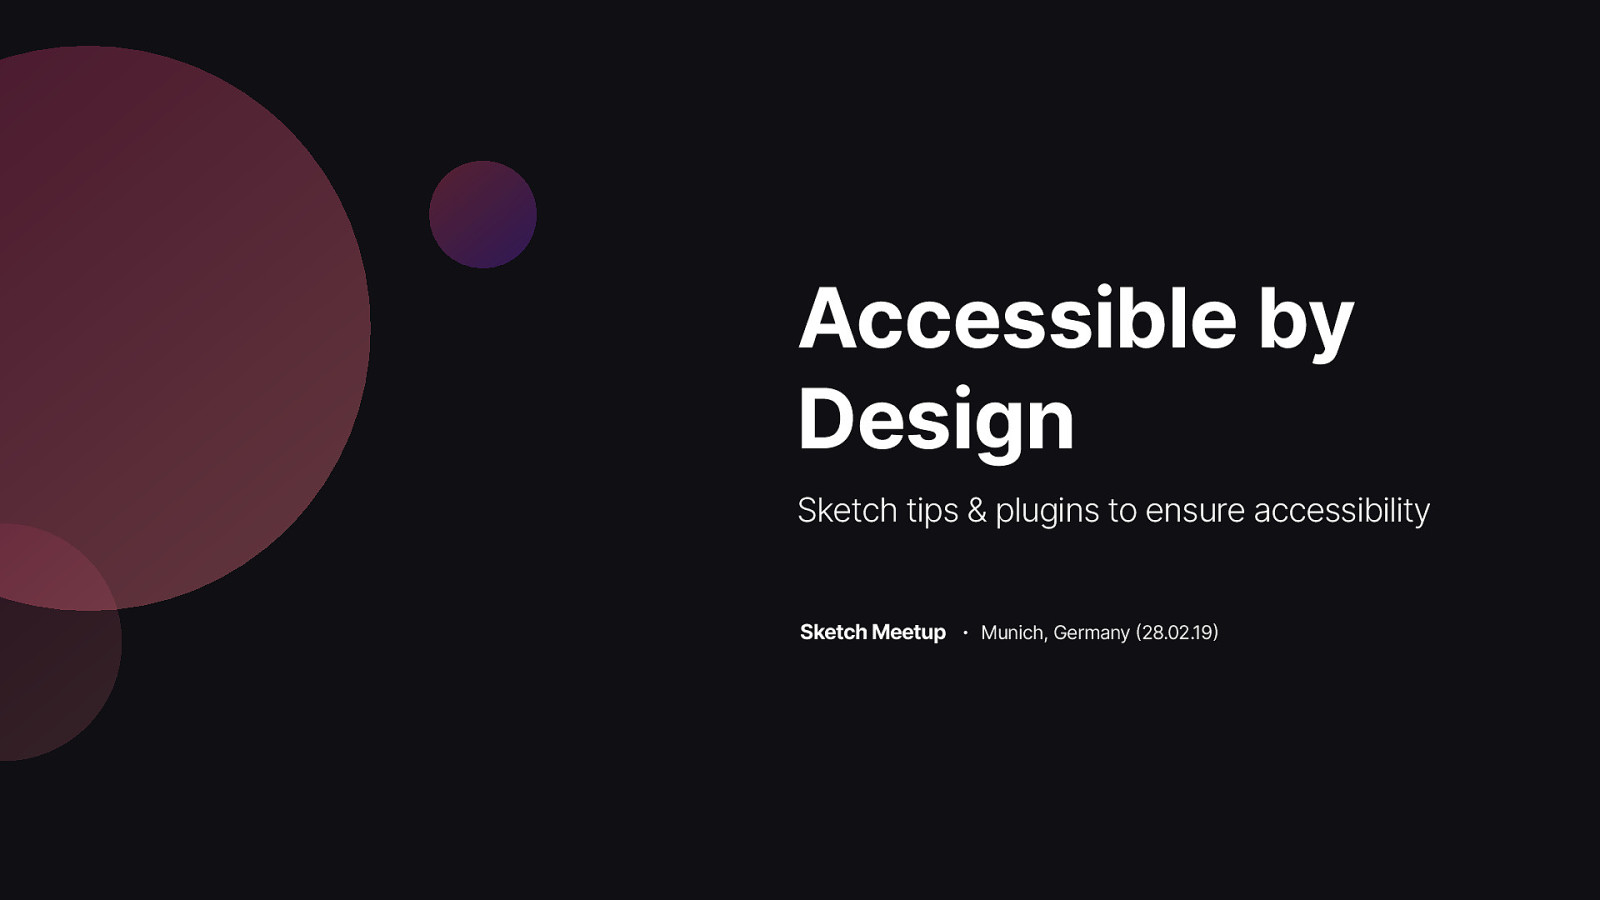 Accessible by Design